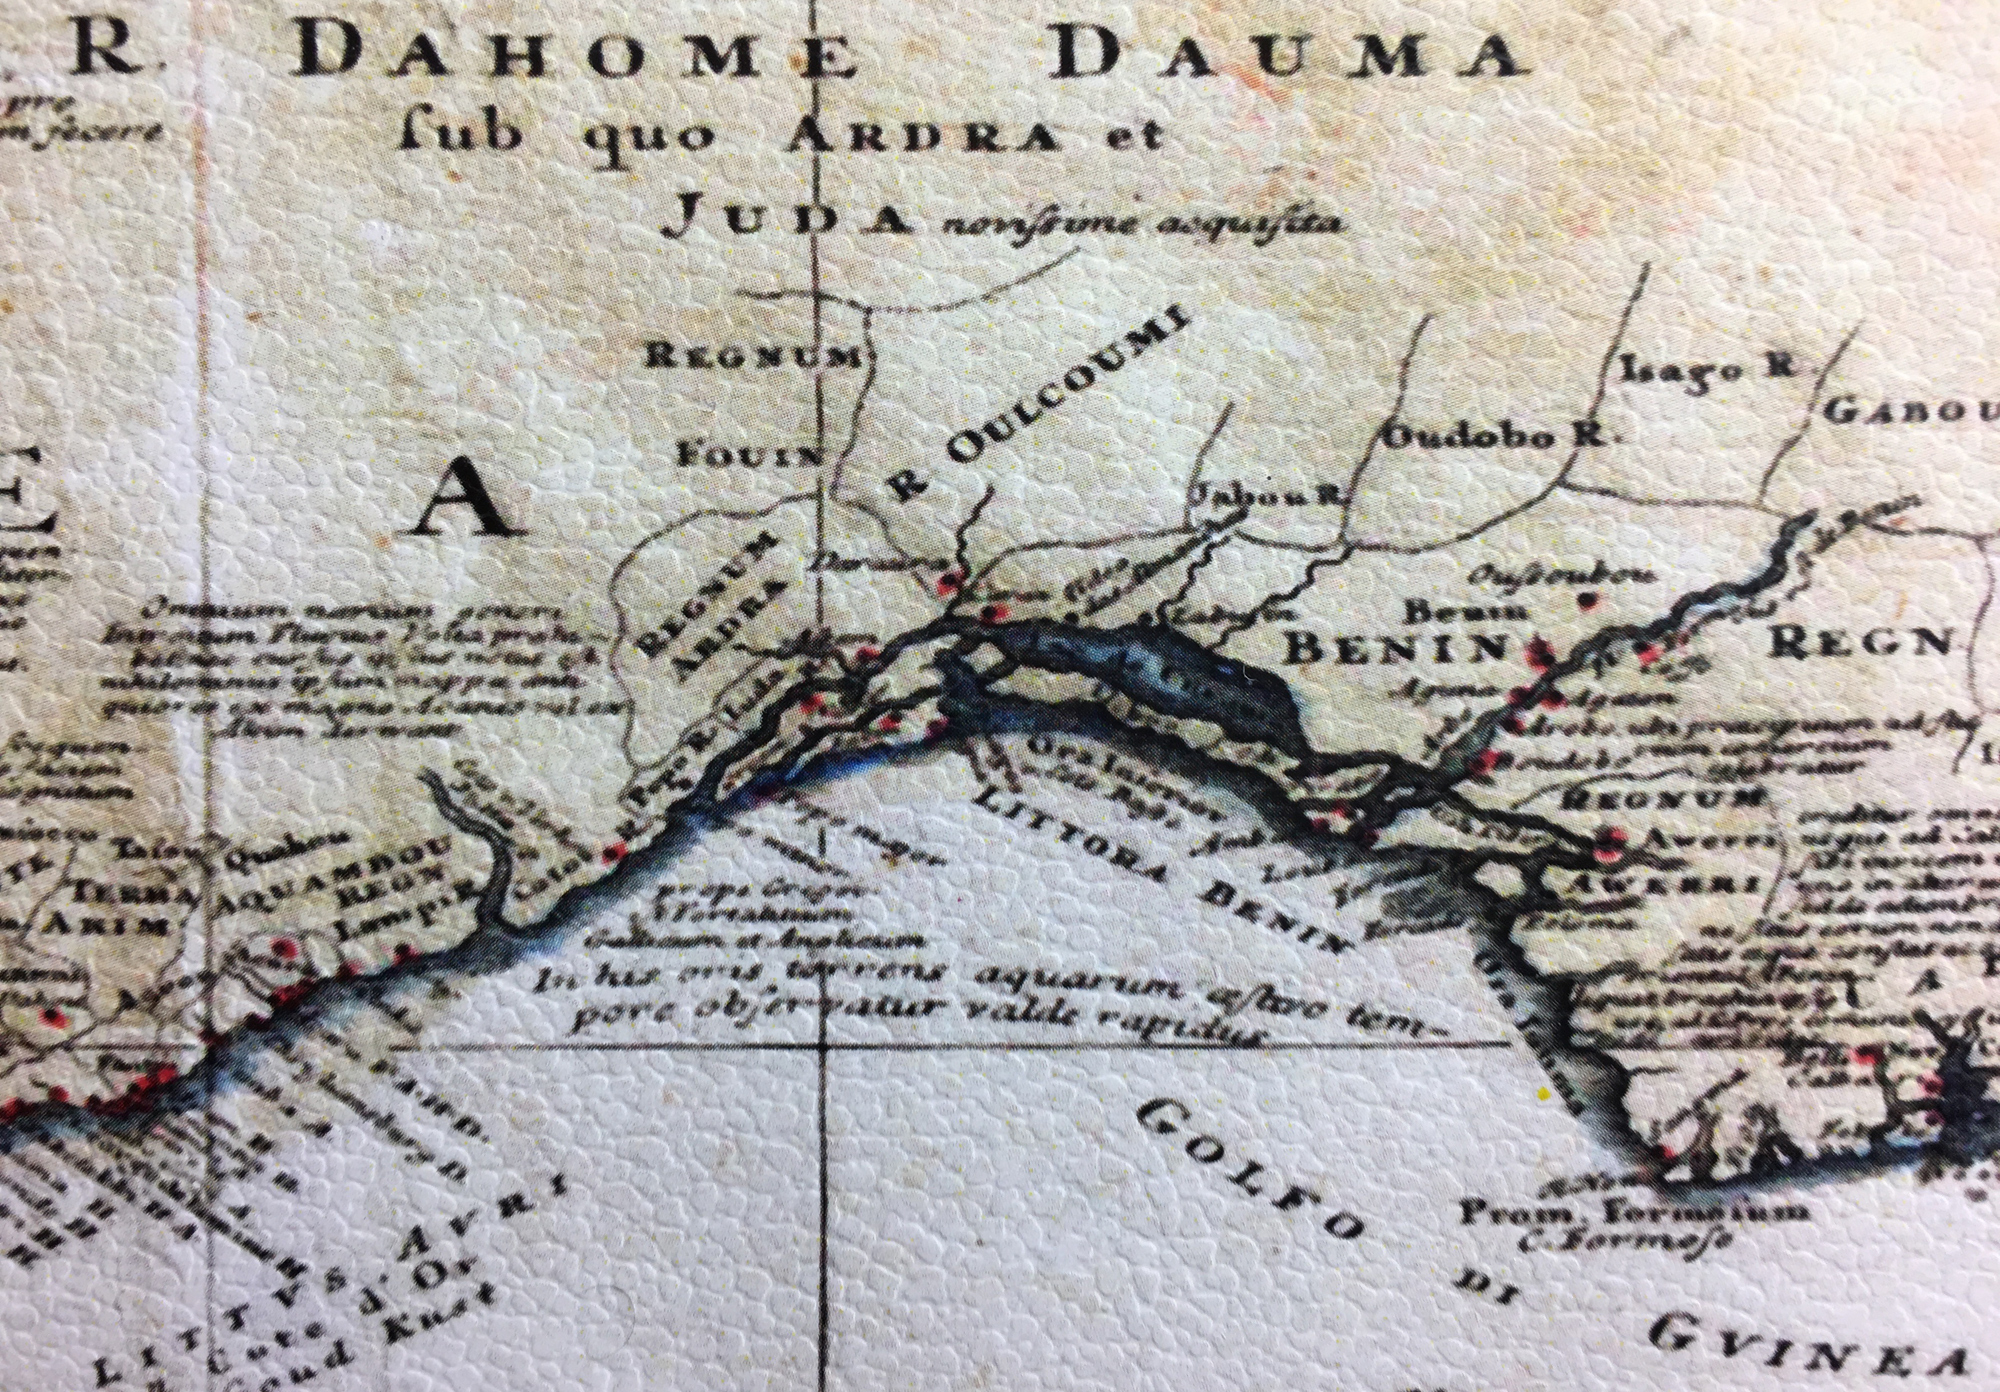 A map from 1743 by Homann Heirs: Guinea propria. I got a small (bad quality) reprint online. Lukumí is here written as Oulcoumi. Oudobo could be the town of Òṣogbo, Jabou is Ìjẹ̀bu, Ardra becomes Arará in Cuba, etc. A good high-res scan is online here at  Wikipedia .